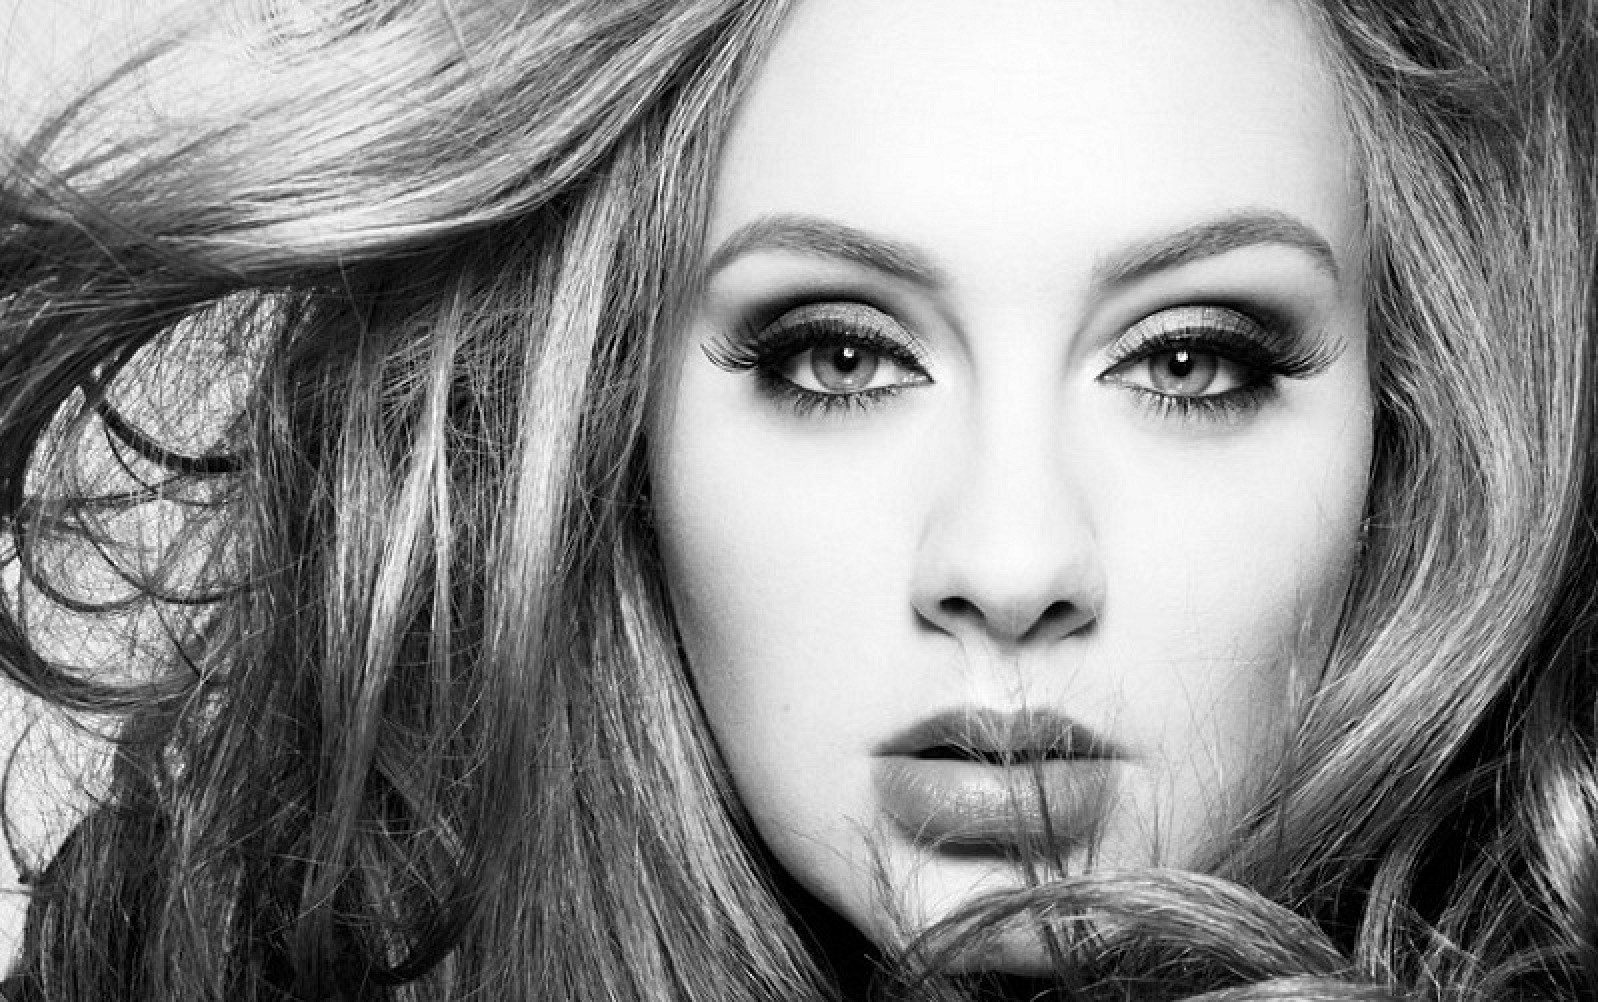 Apple Declines Offer To Sell Adele's Upcoming Album '25